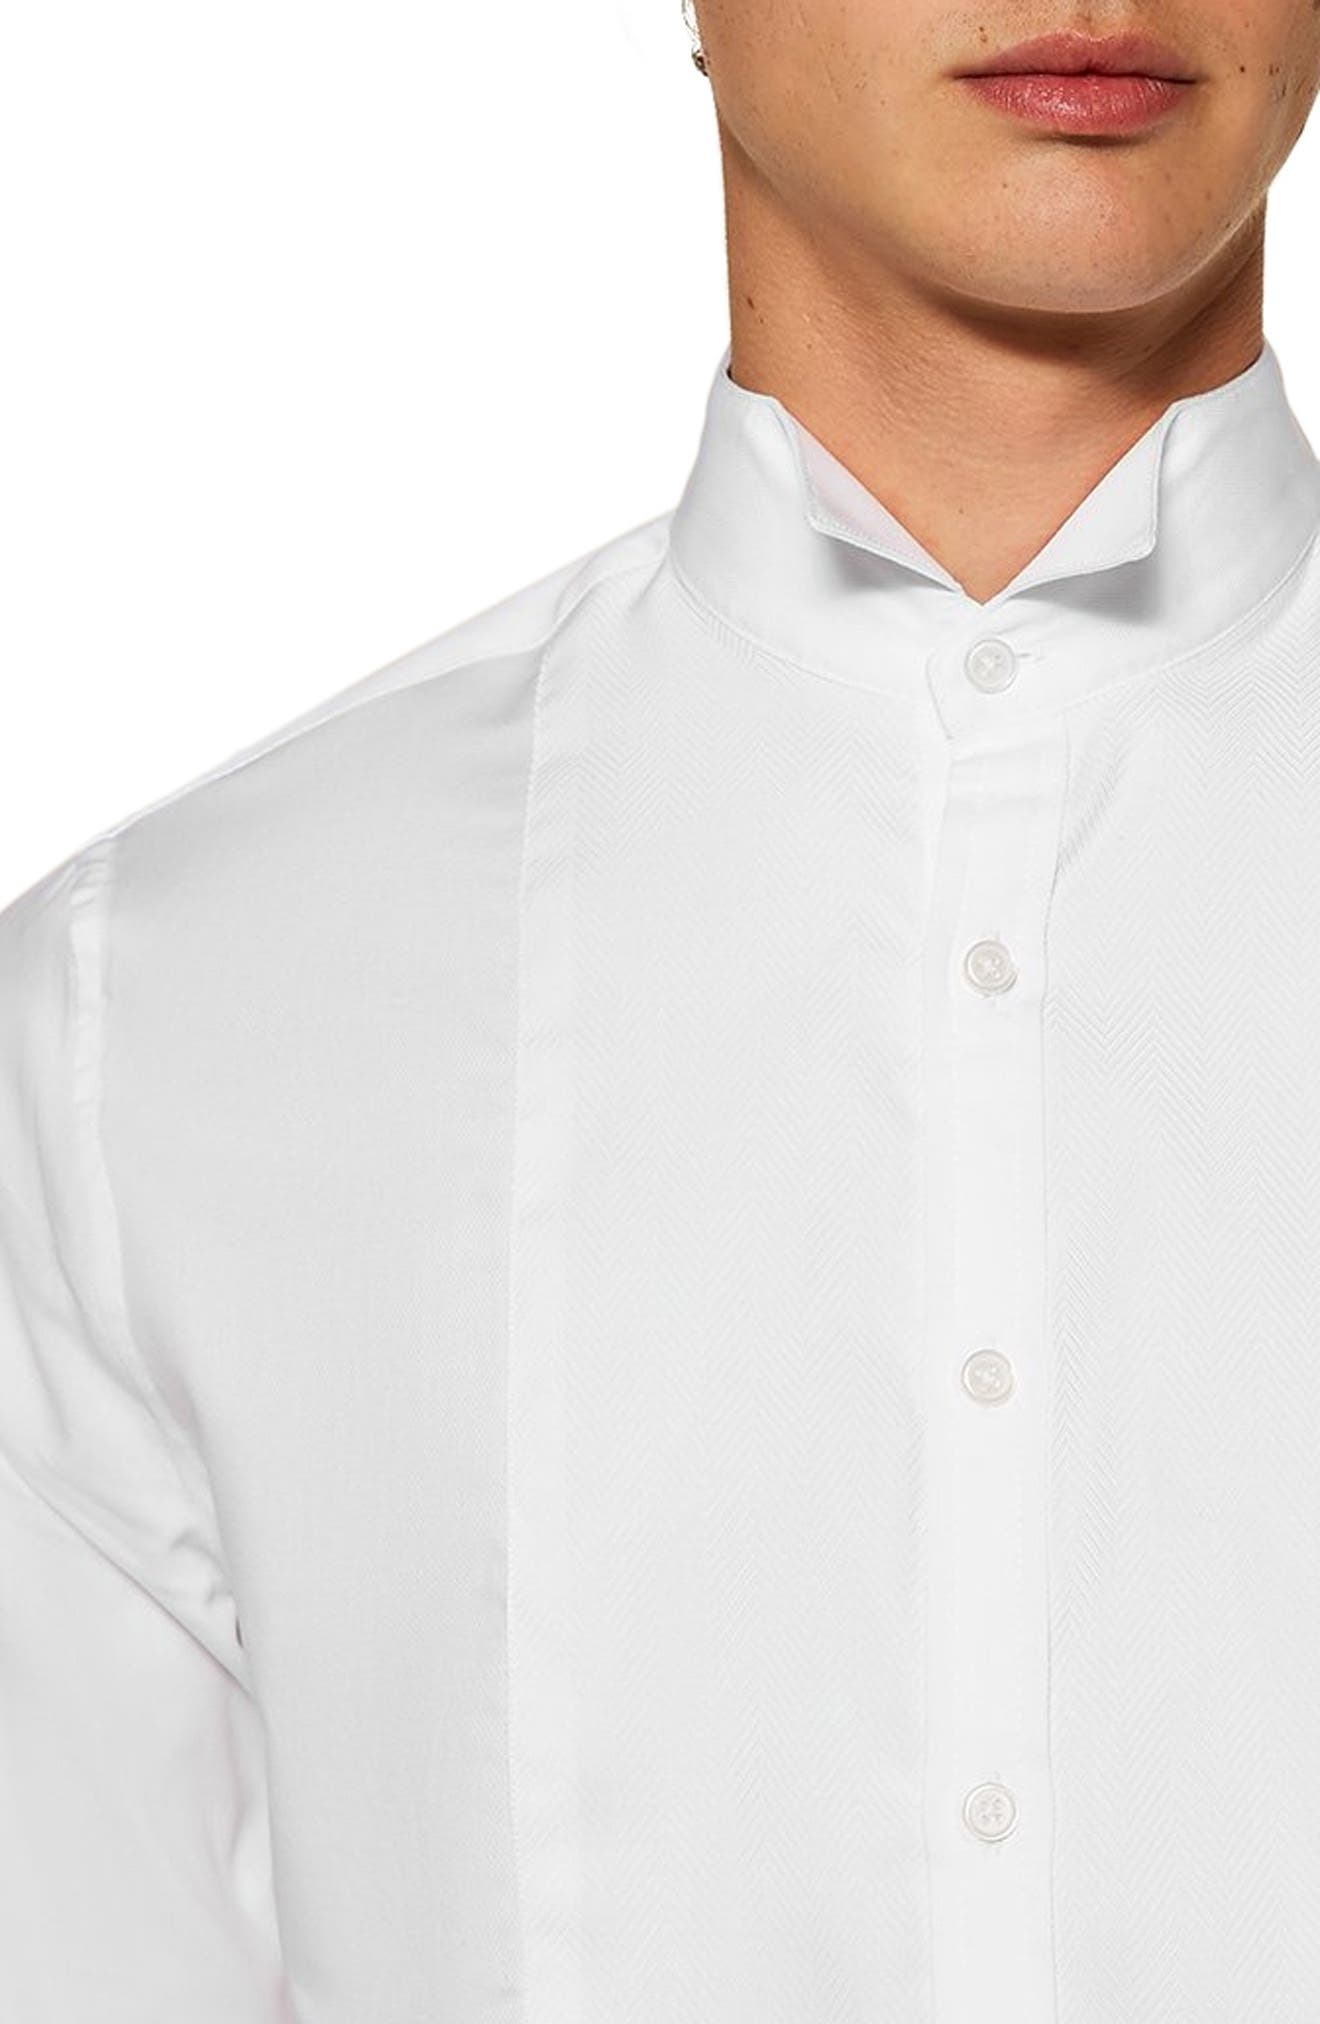 Wing Collar Classic Shirt,                             Alternate thumbnail 2, color,                             WHITE